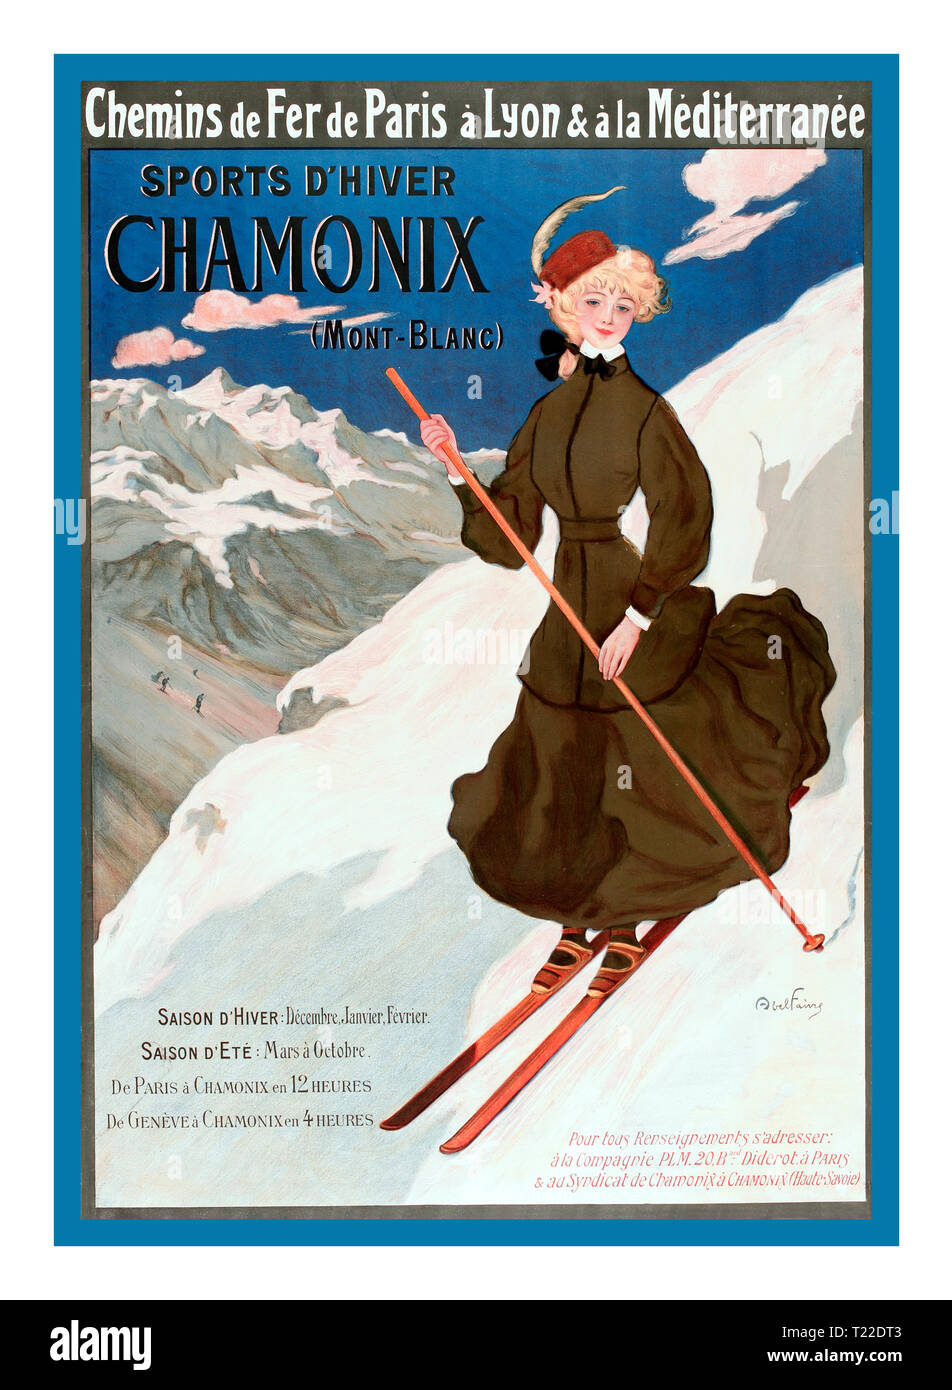 Vintage Chamonix French Ski Skiing Poster 1900's By French Railway via Paris Lyon and Mediterranée Sports d'hiver-winter sports. Chamonix (Mont-Blanc) France 1905 - Stock Image